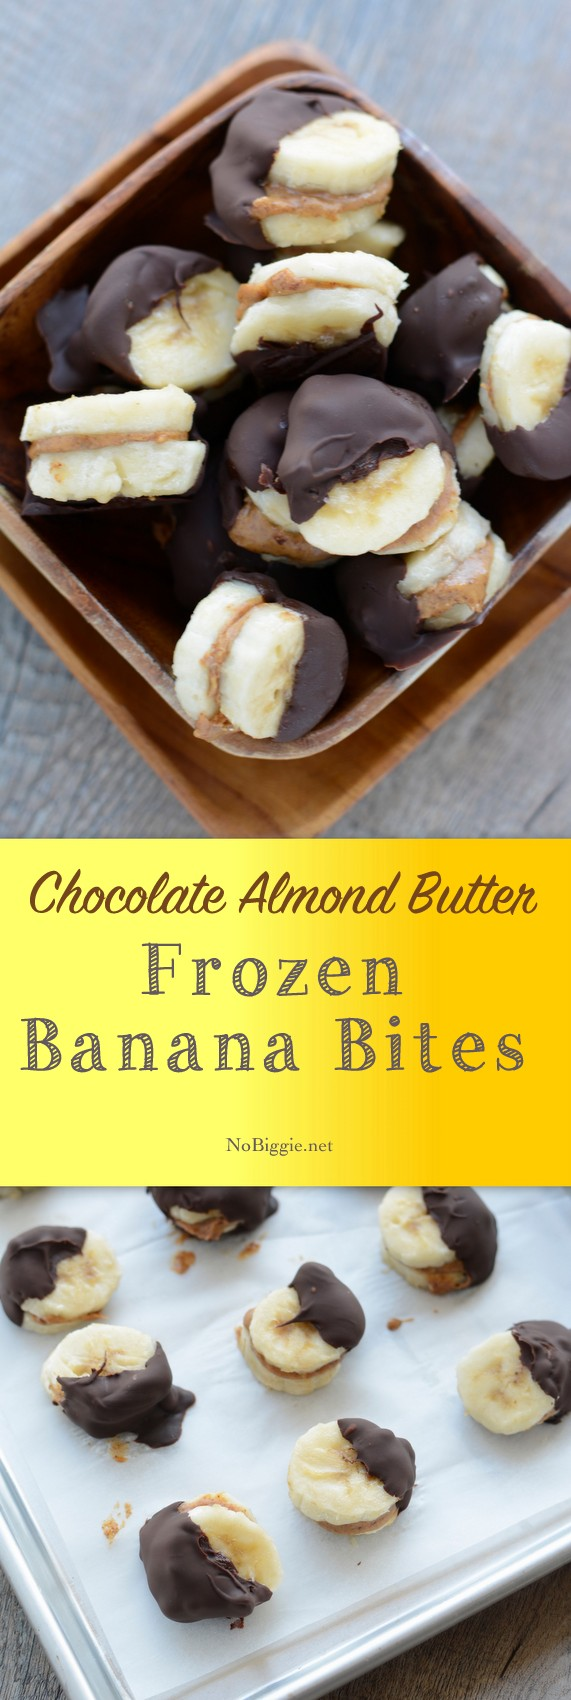 Frozen Banana Bites -  Next time you need a little snack, you'll have to try these frozen chocolate almond butter banana bites. They are super easy to make and so tasty. # Frozenbananabites #chocolate #almondbutter #glutenfree #dairyfree #healthysnacks